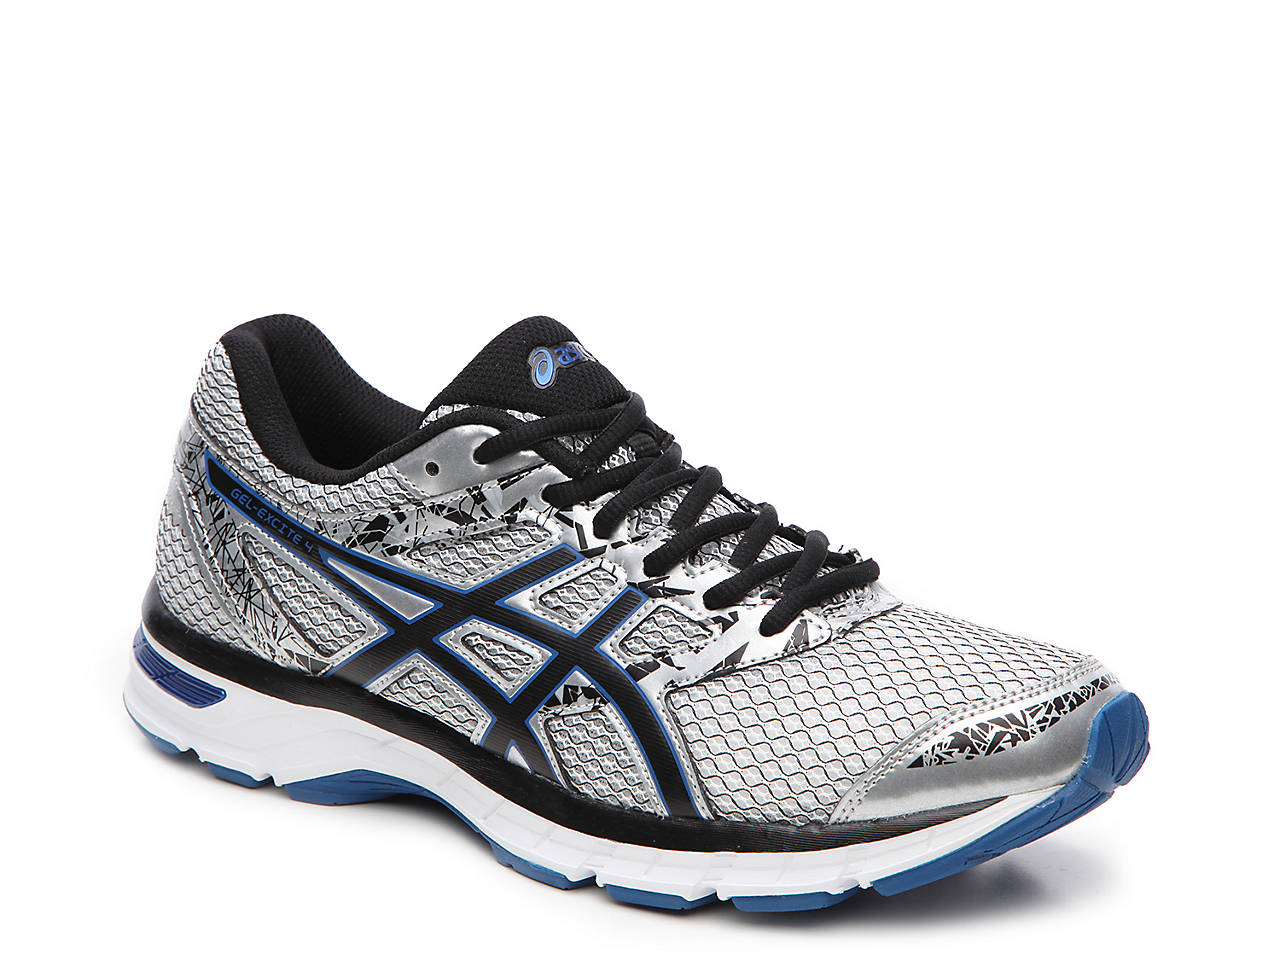 ASICS GEL-Excite 4 Running Shoe - Men s Men s Shoes  8e529863e85a5